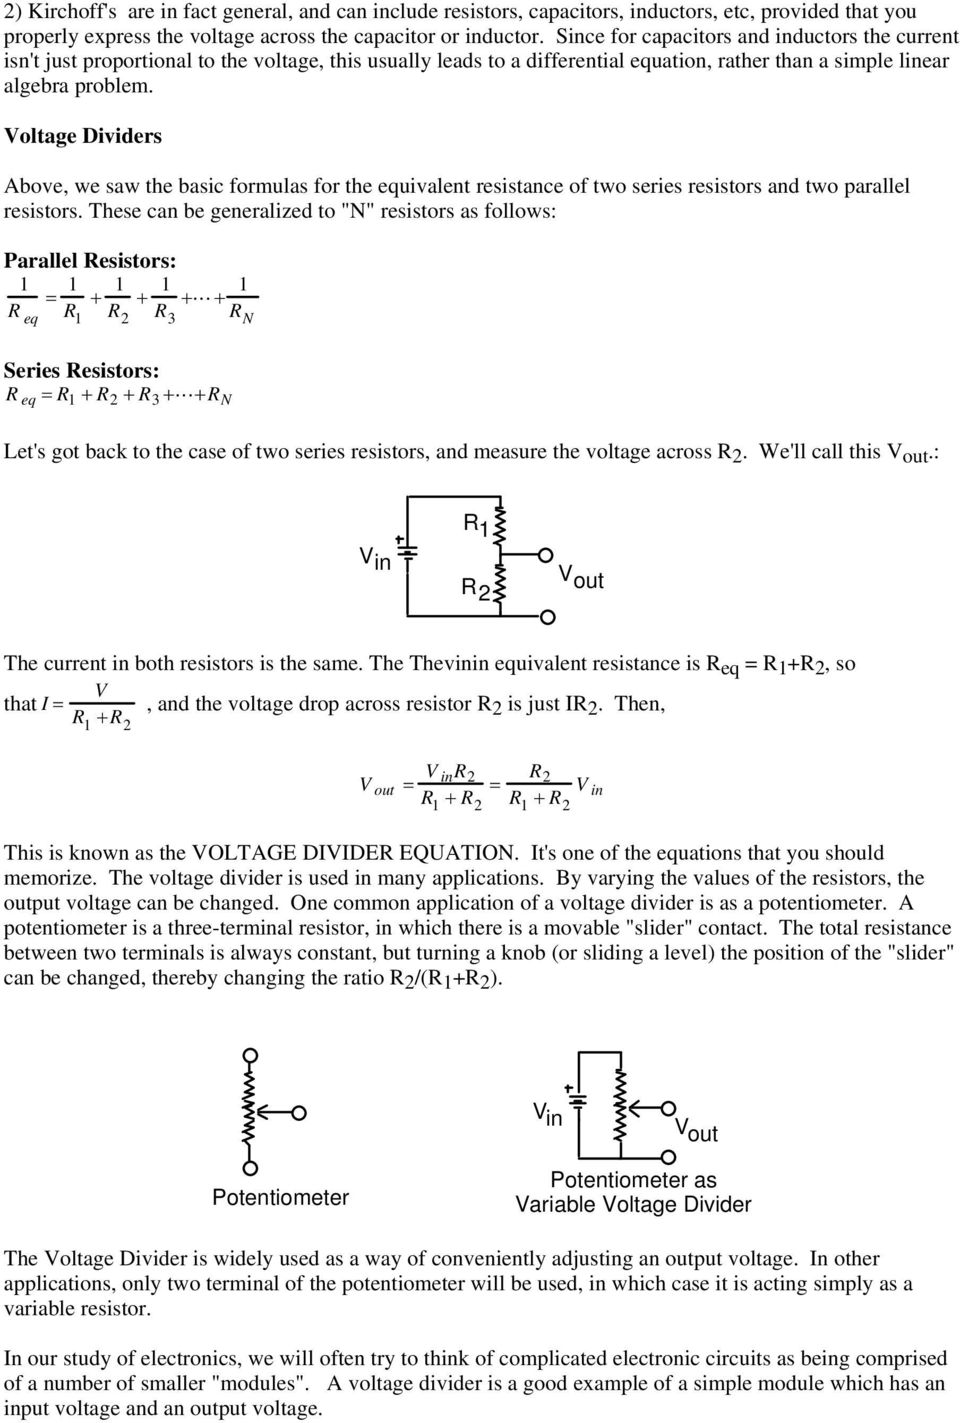 Chem 628 Lecture Notes Passive Circuits Resistance Capacitance Simple Series And Parallel Let Voltage Dividers Above We Saw The Basic Formulas For Equivalent Of Two